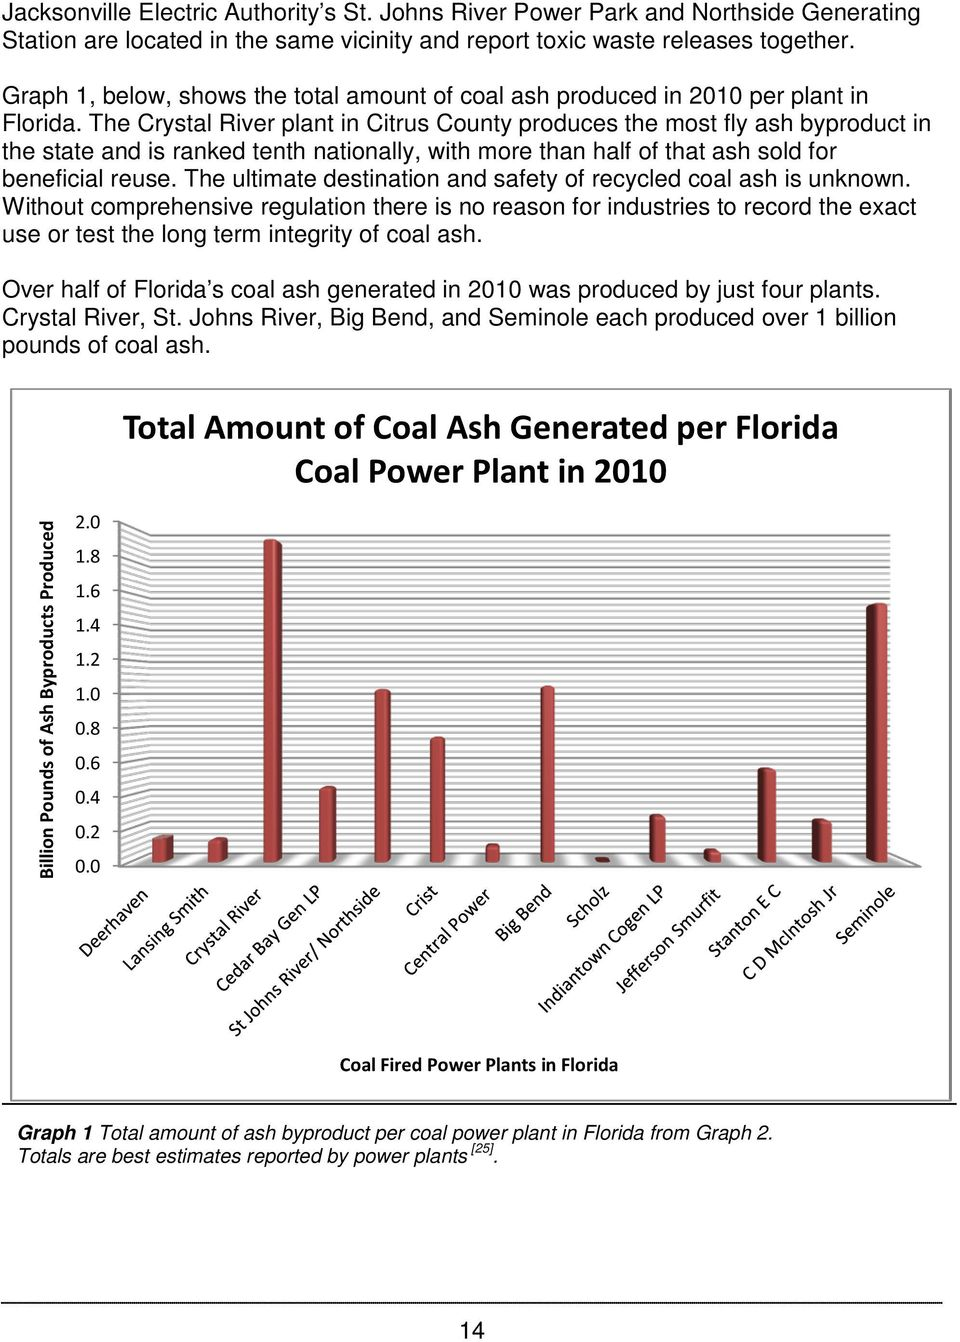 The Crystal plant in Citrus County produces the most fly ash byproduct in the state and is ranked tenth nationally, with more than half of that ash sold for beneficial reuse.